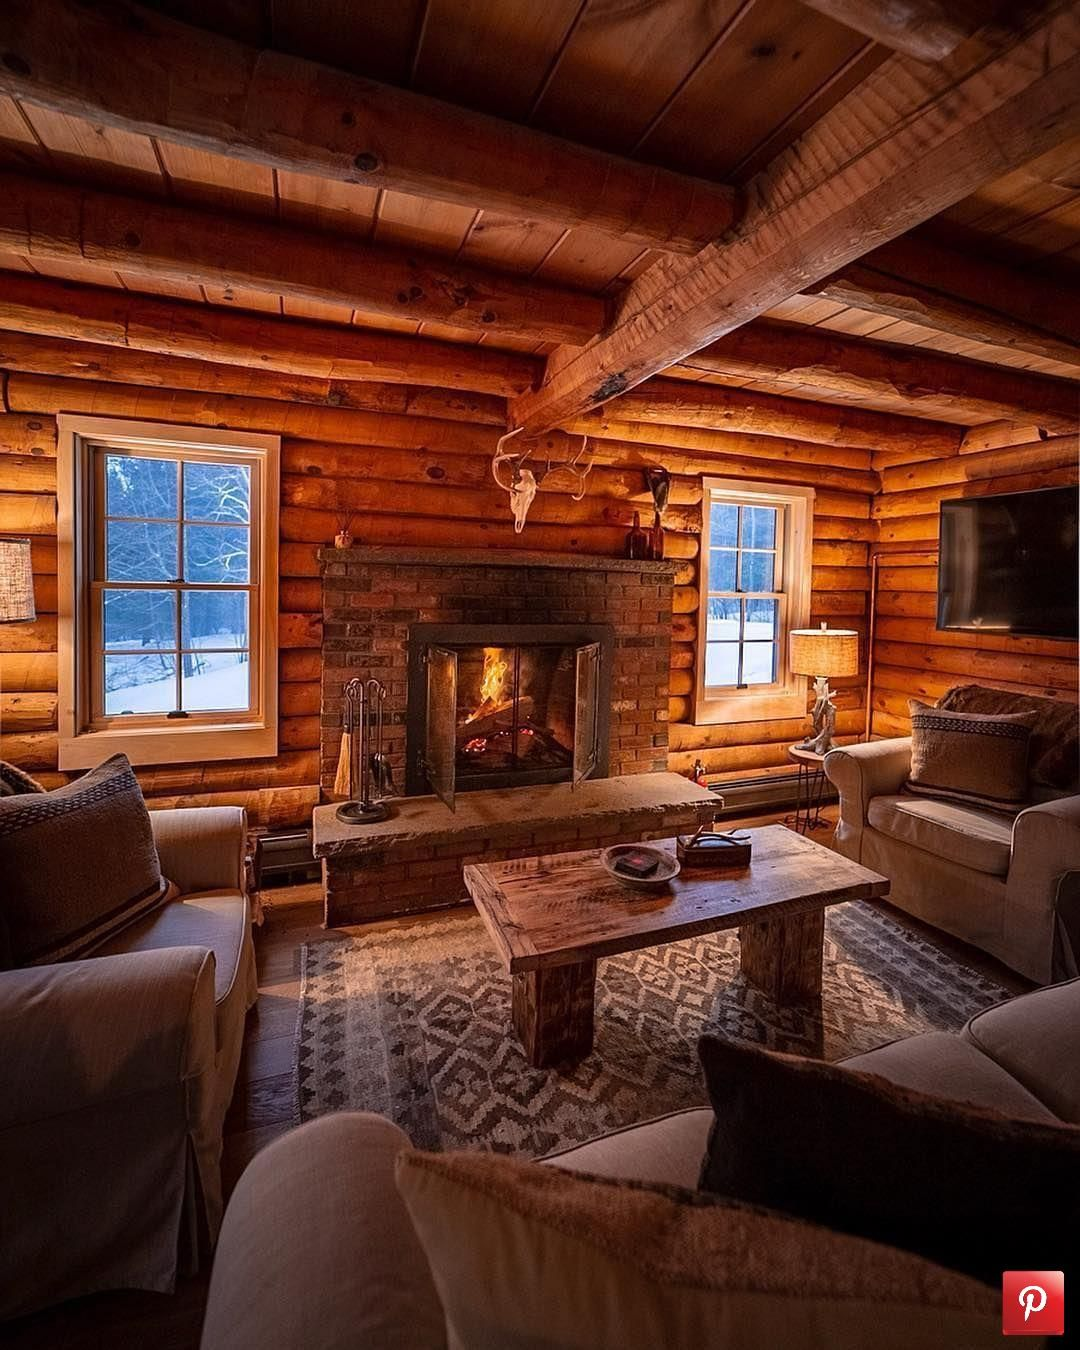 Warm cabin with a view of the snow Check out desigedecors.com to get more inspiration #interiordesign #cozyplace #rustic #homed